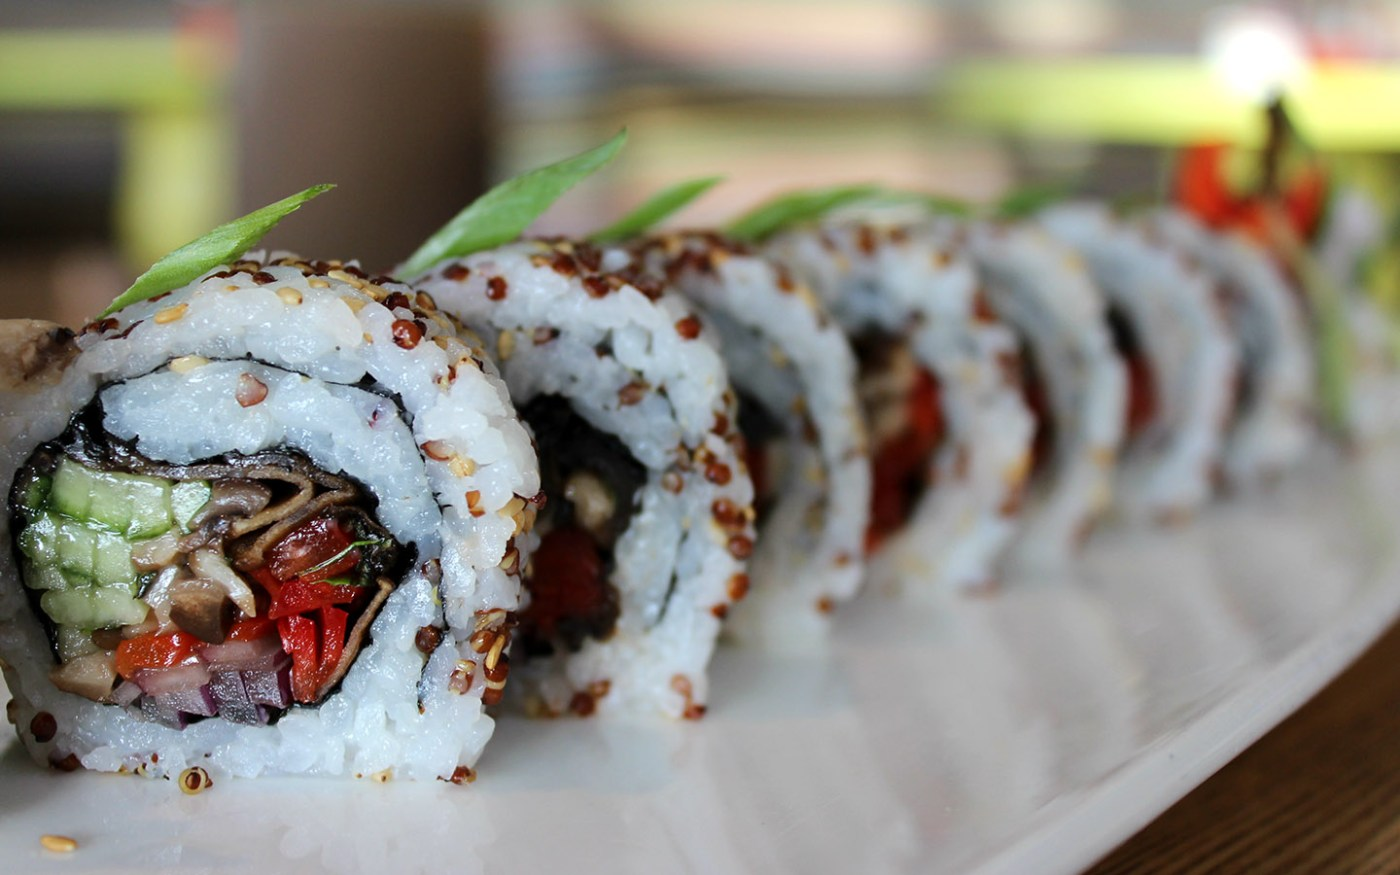 The Tree Hugger roll from The Cowfish in Universal CityWalk.